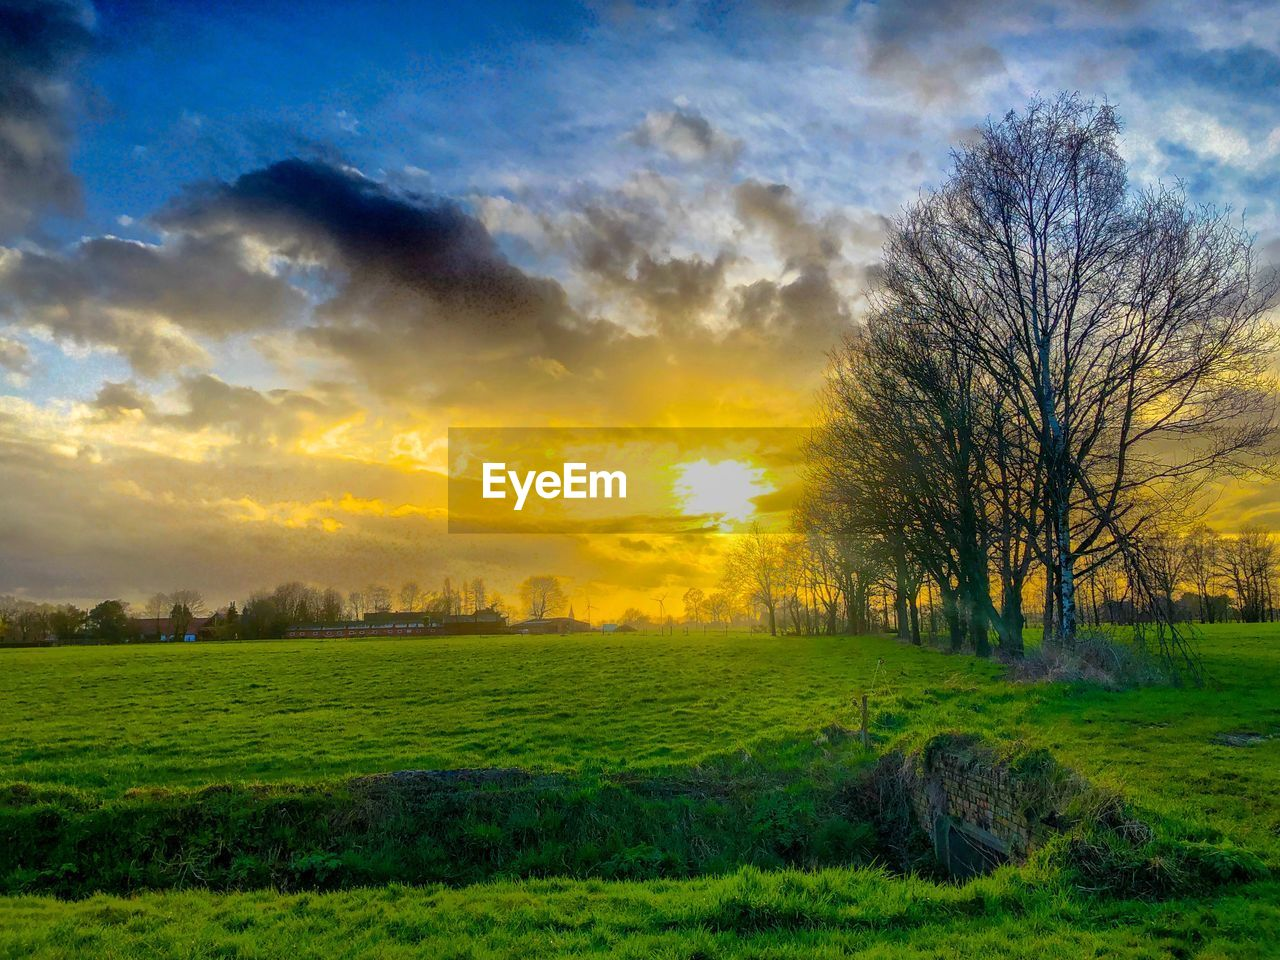 sky, cloud - sky, scenics - nature, tranquil scene, tree, landscape, beauty in nature, plant, tranquility, grass, environment, sunset, nature, land, field, no people, non-urban scene, bare tree, idyllic, green color, sun, outdoors